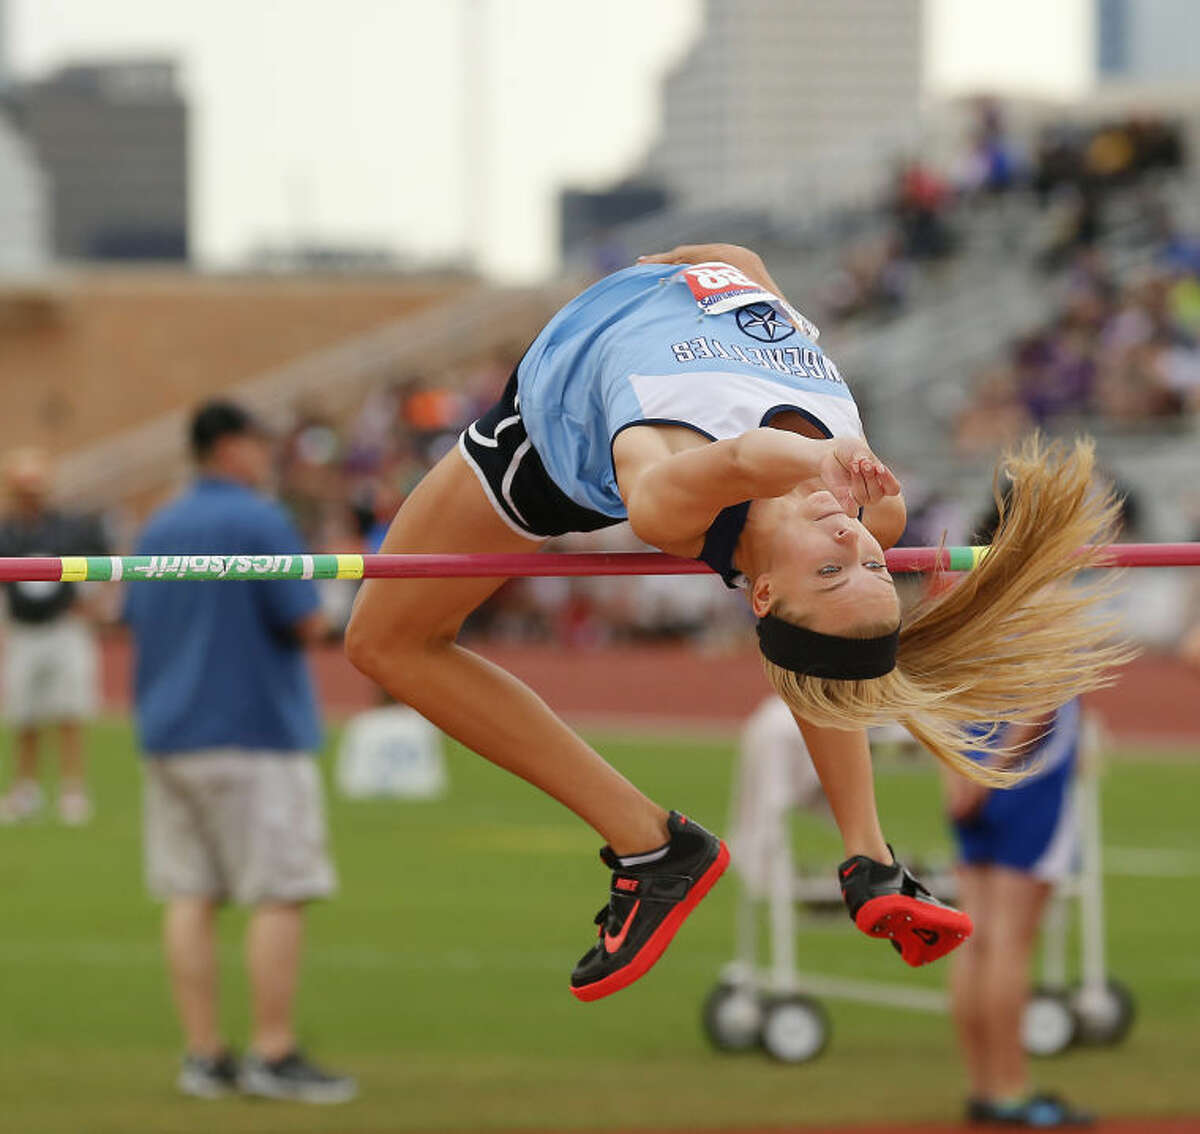 Greenwood's Morgan McKee clears the bar on the way to earning a silver medal at the UIL State Track and Field meet in Austin. McKee cleared 5 feet 6 inches to place second in her last trip to the state meet.